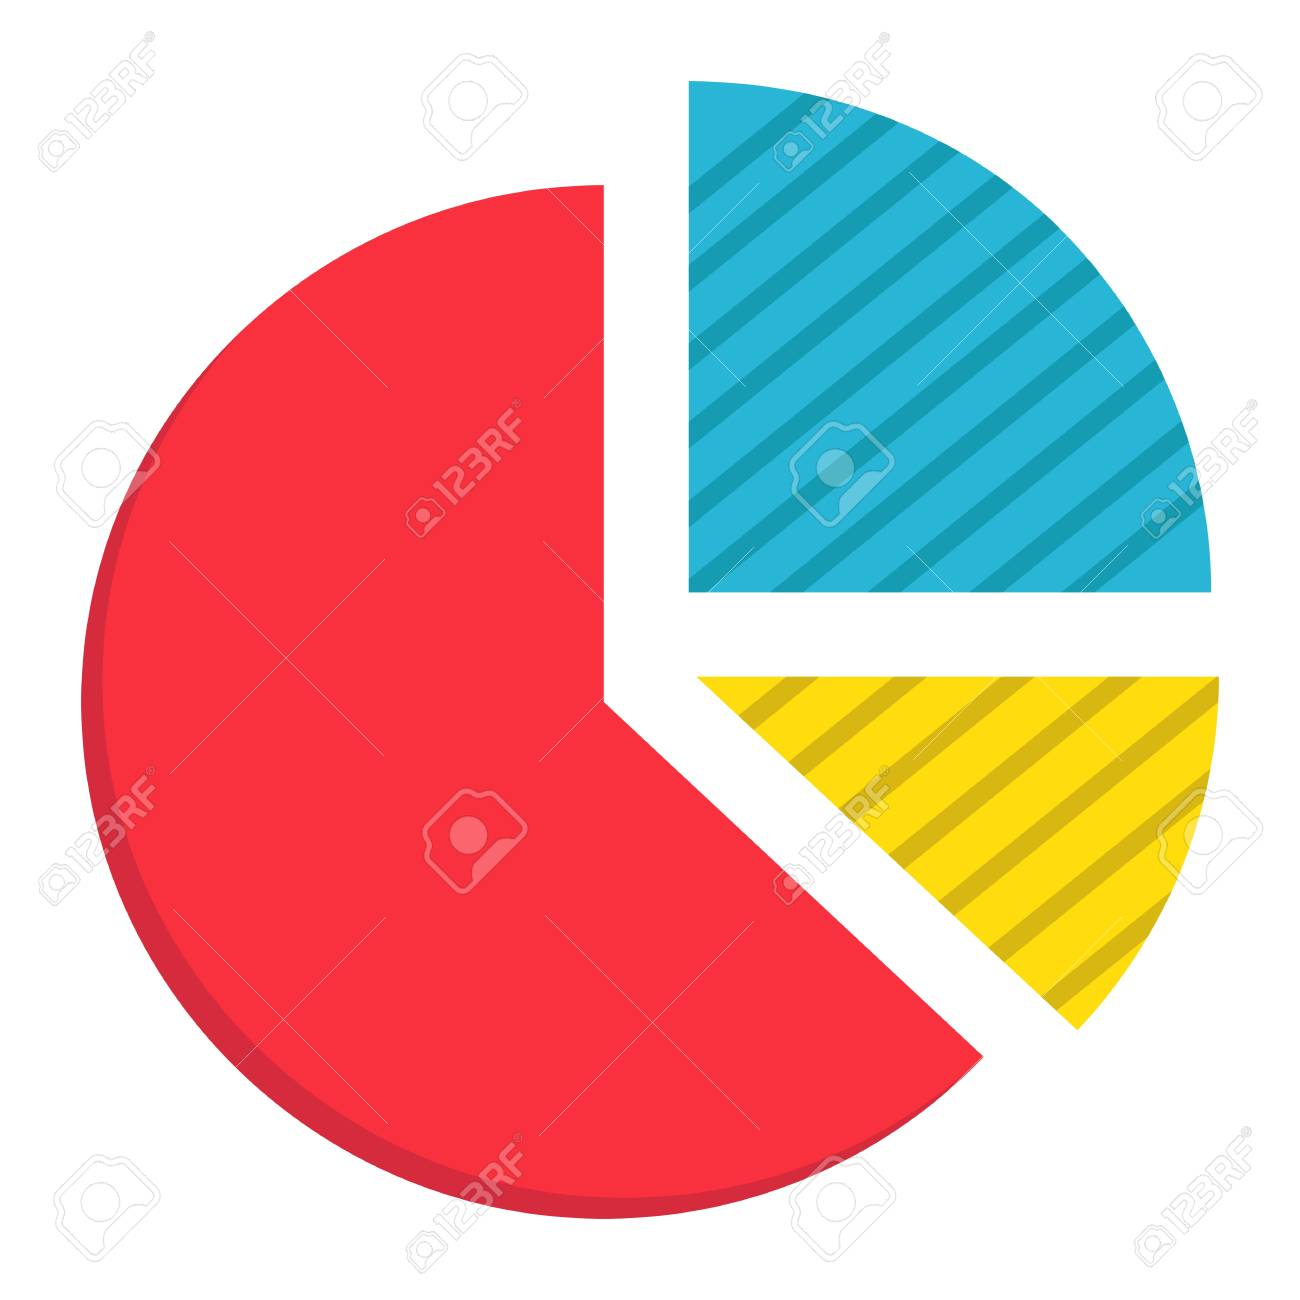 pie chart flat icon business and diagram vector graphics a rh 123rf com pie chart vector png pie chart vector free